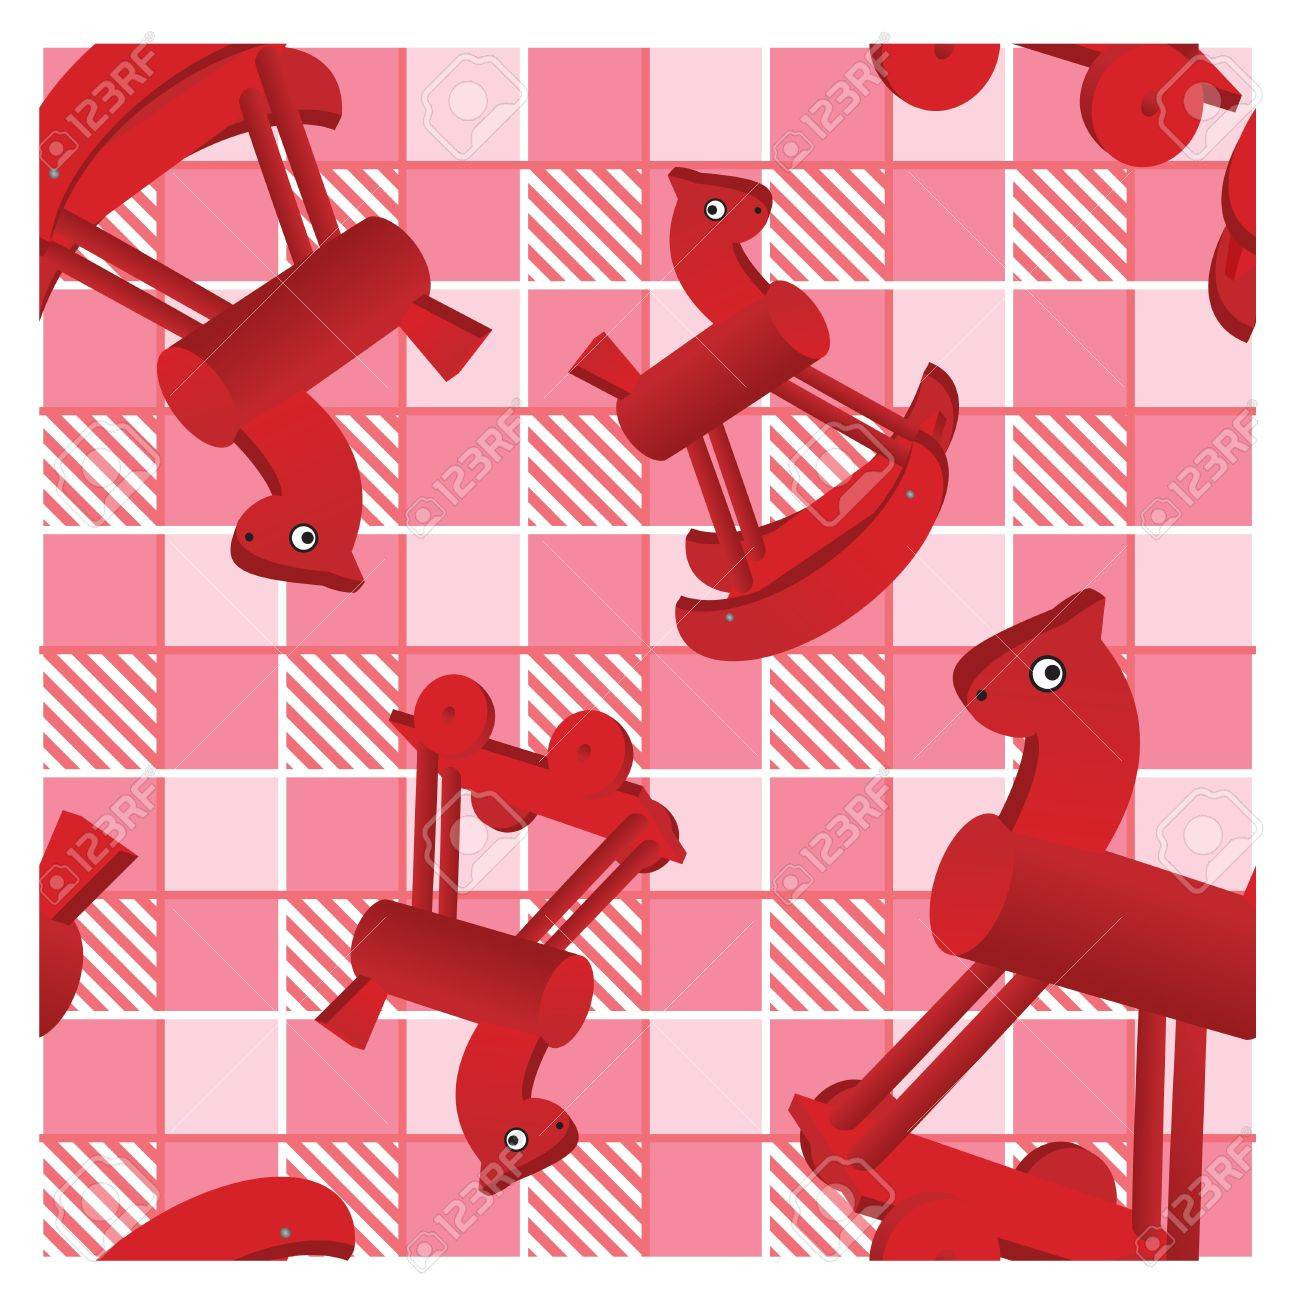 Seamless Pattern With Toys Red Horses On Checked Pink Background Royalty Free Cliparts Vectors And Stock Illustration Image 11142215